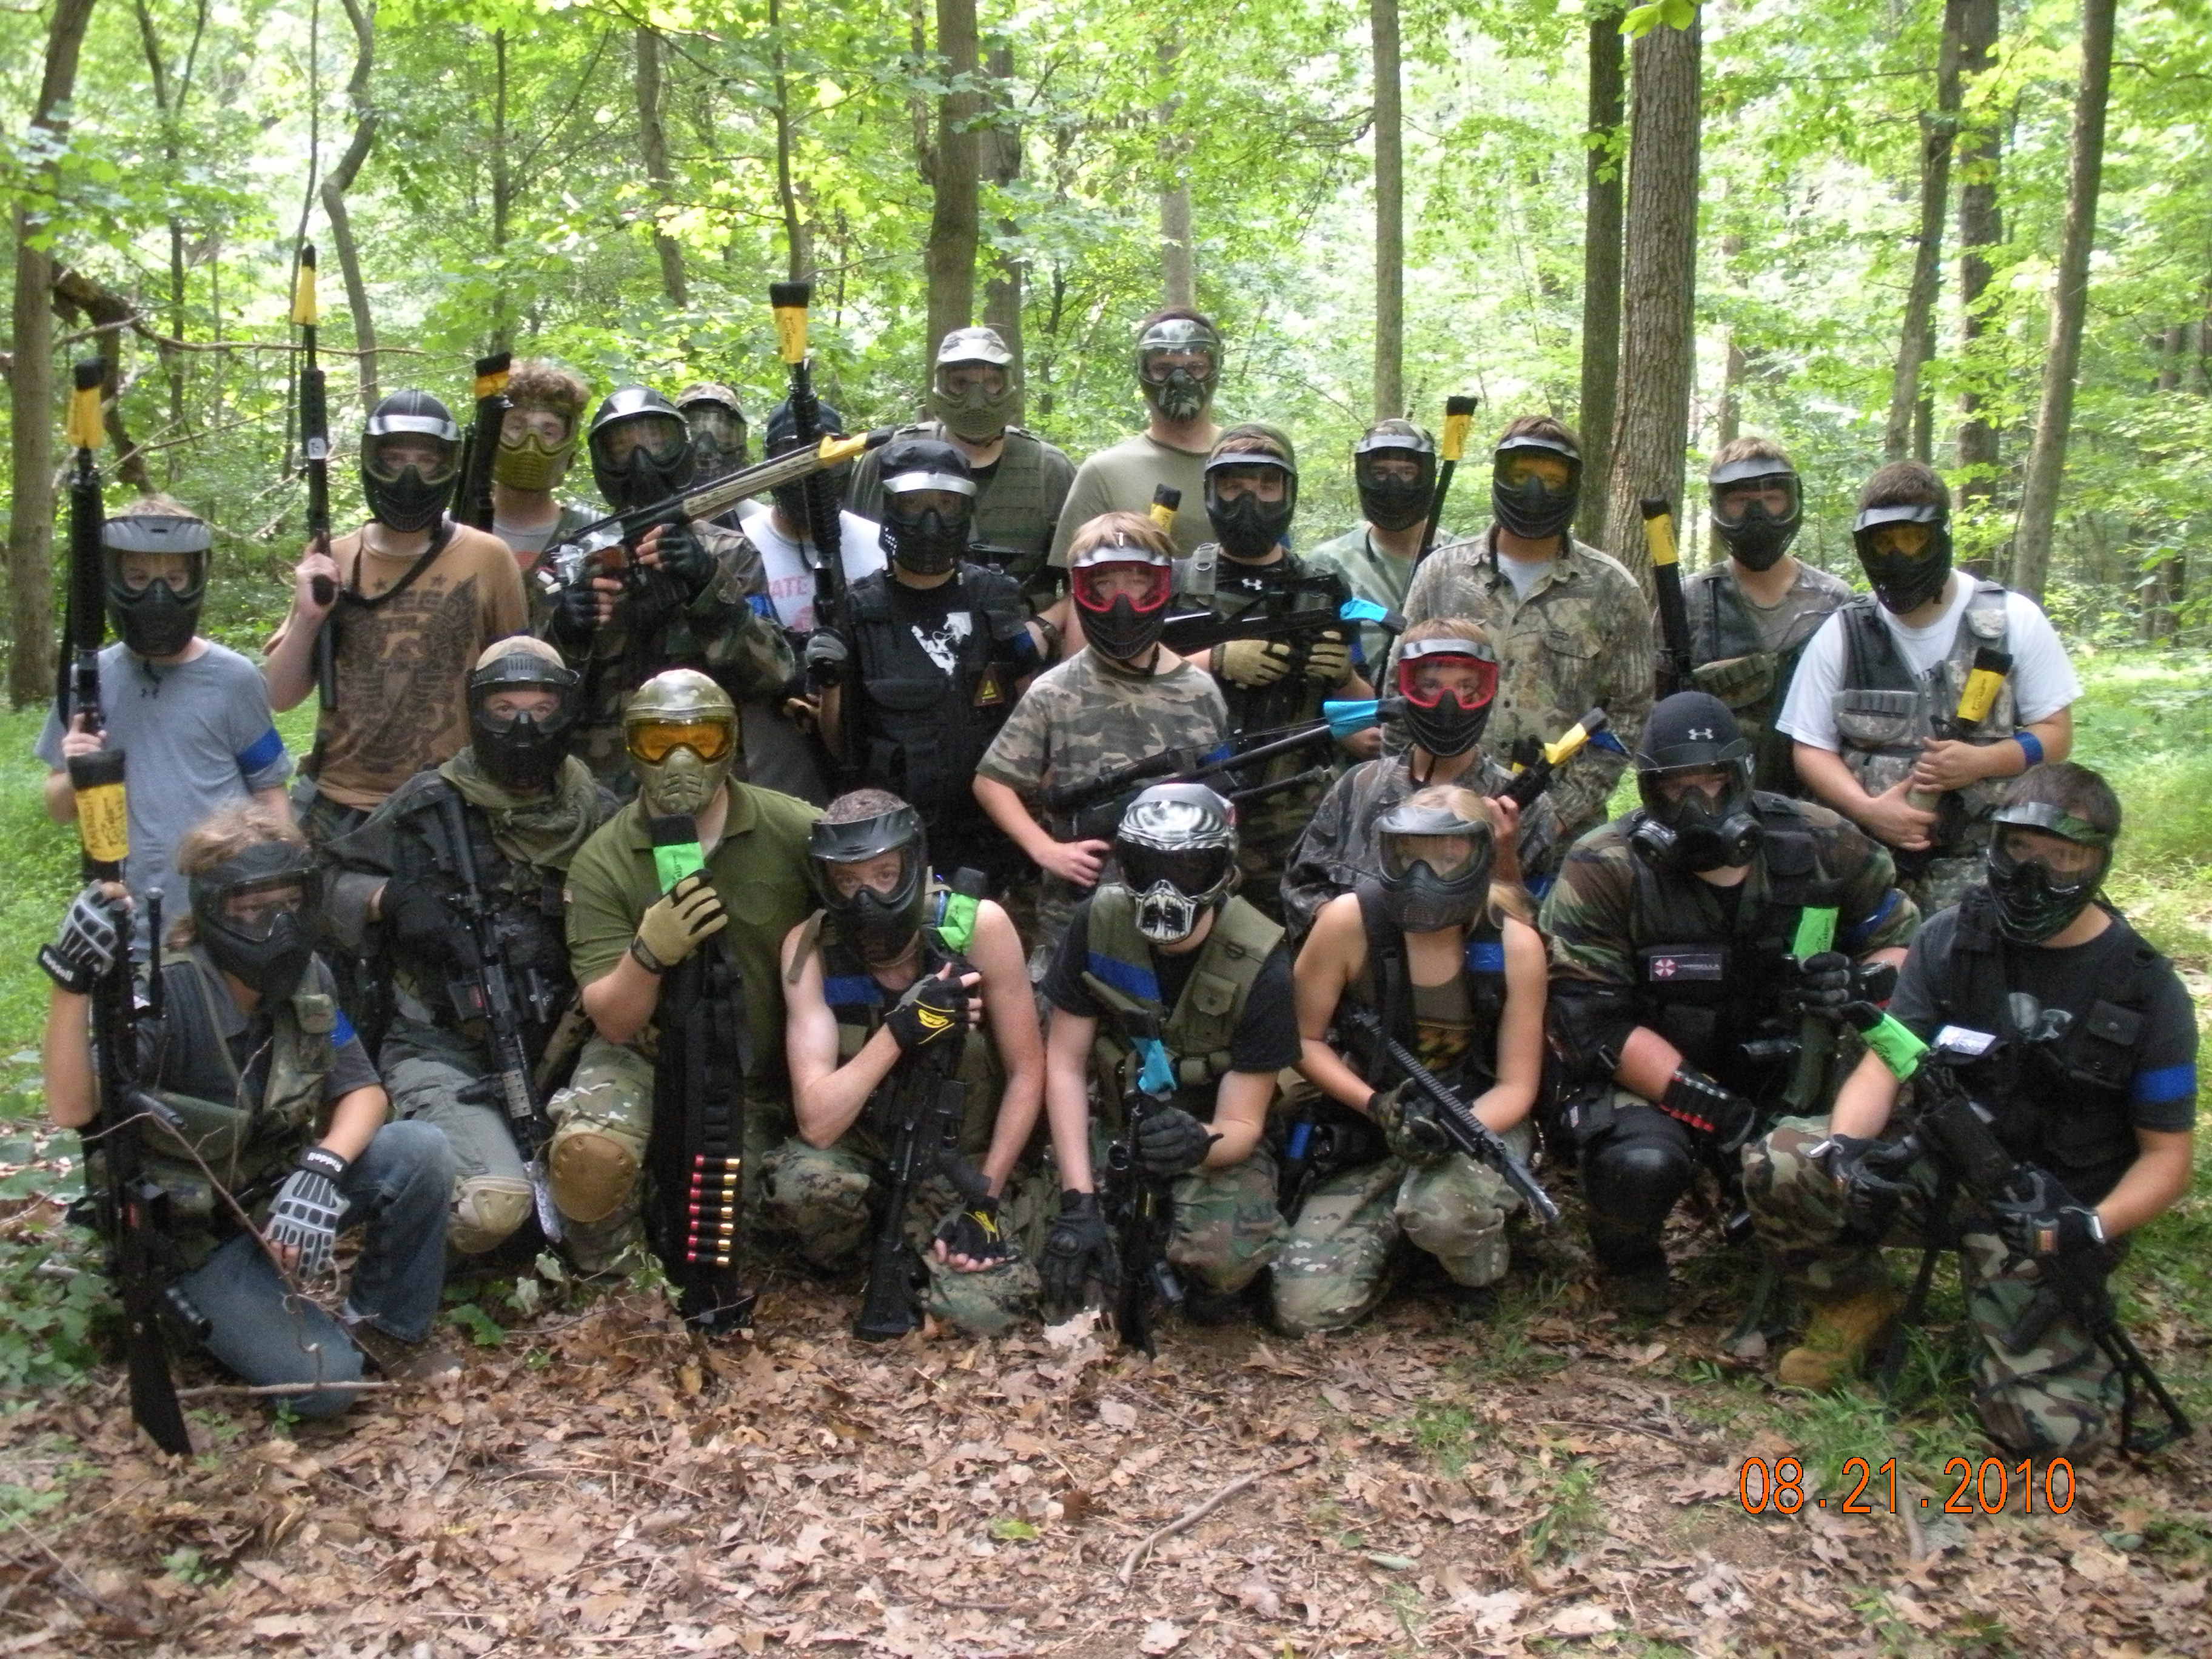 Airsoft%2012